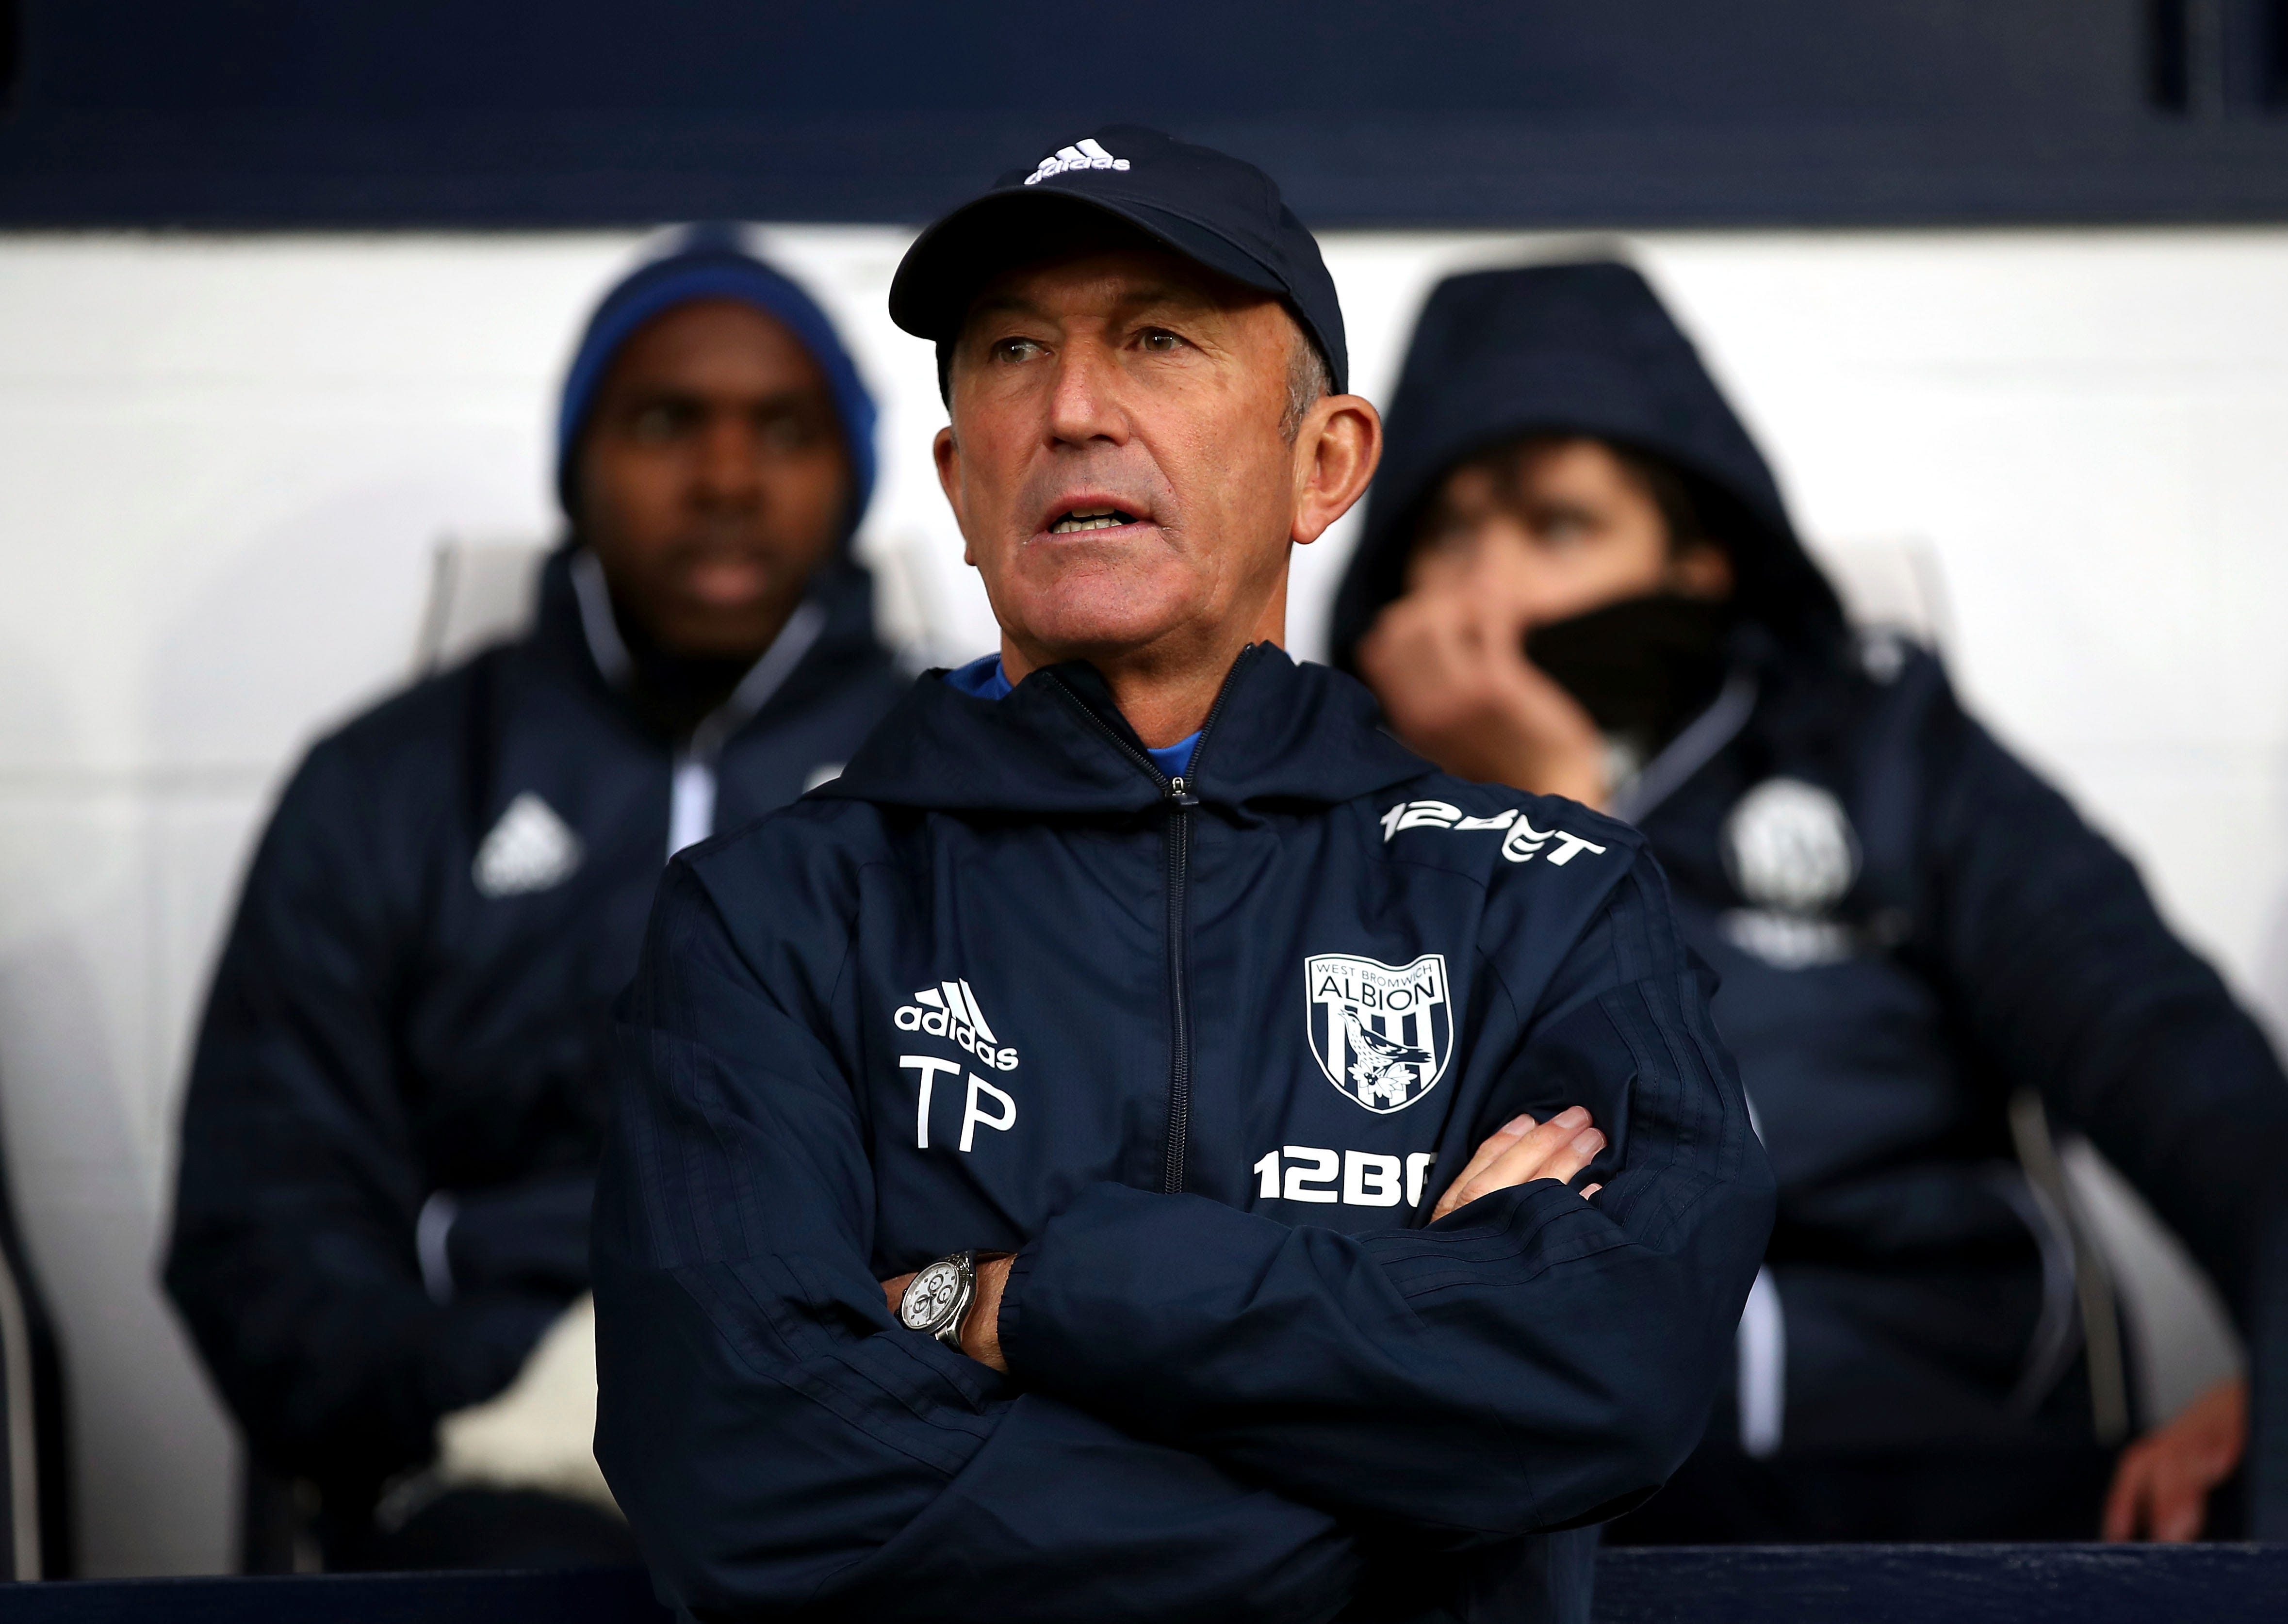 West Brom fires Tony Pulis with team in relegation danger